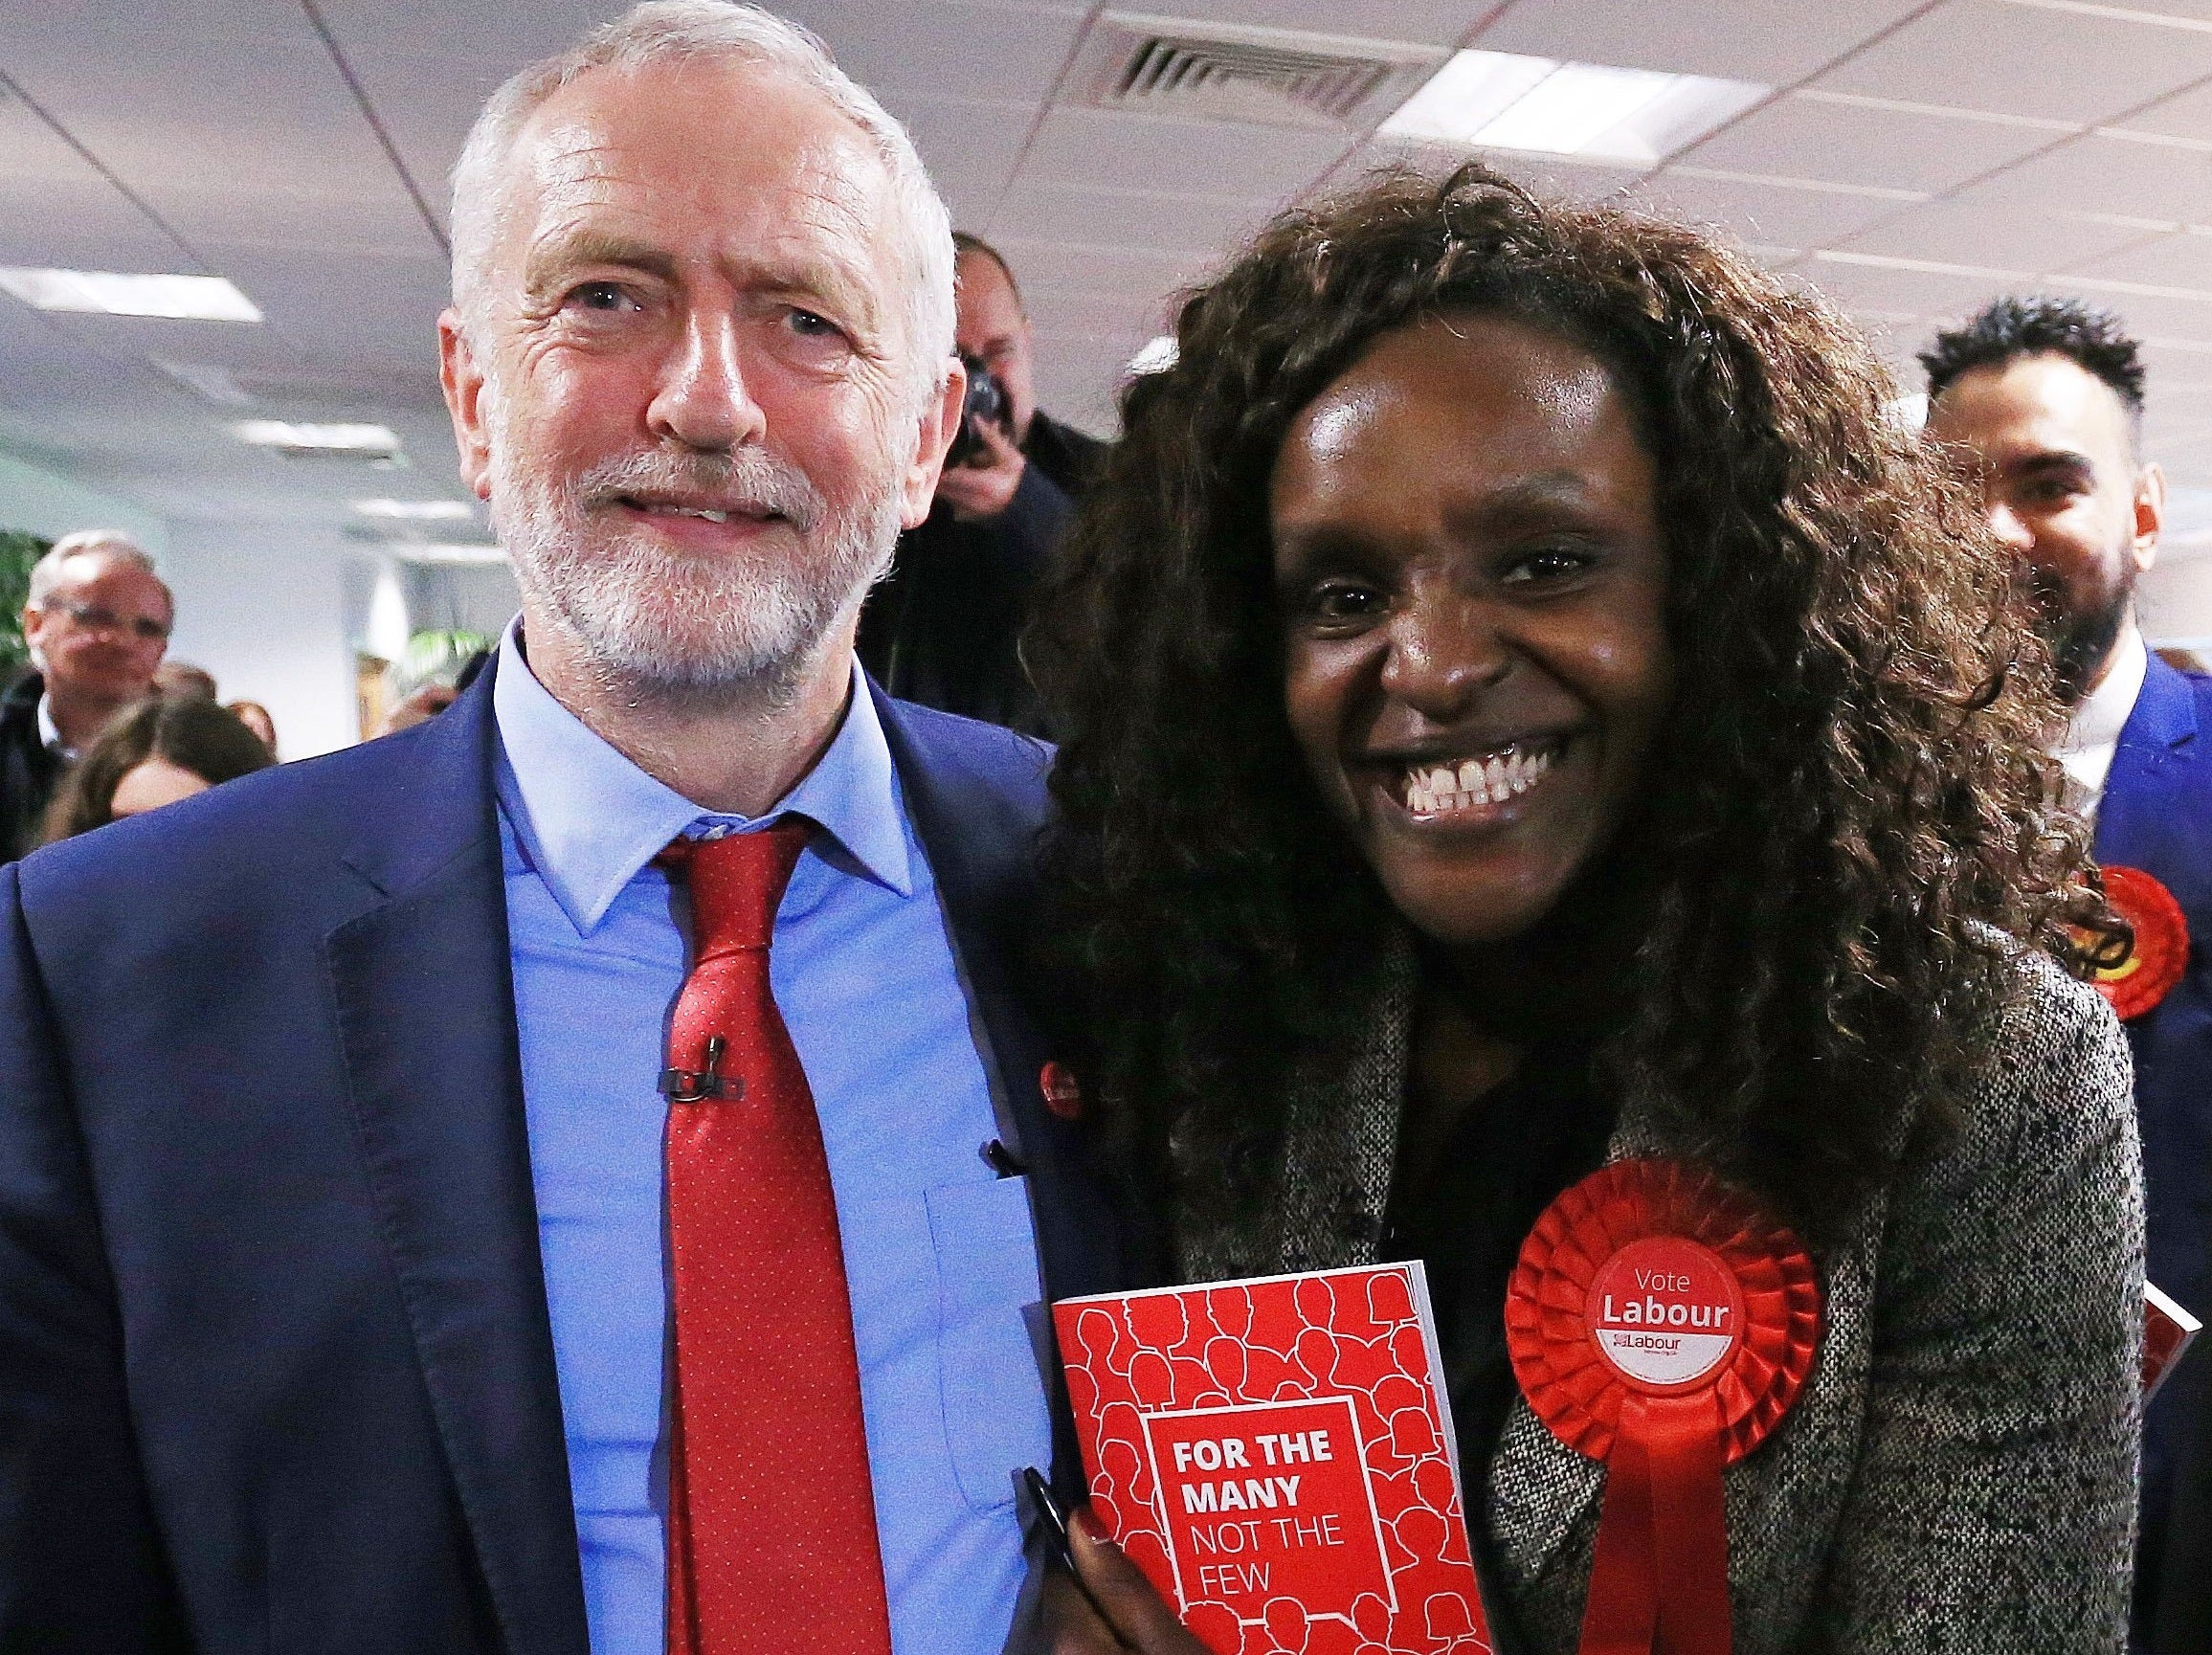 Daniel Hannan is right about one thing: Fiona Onasanya should not go to jail